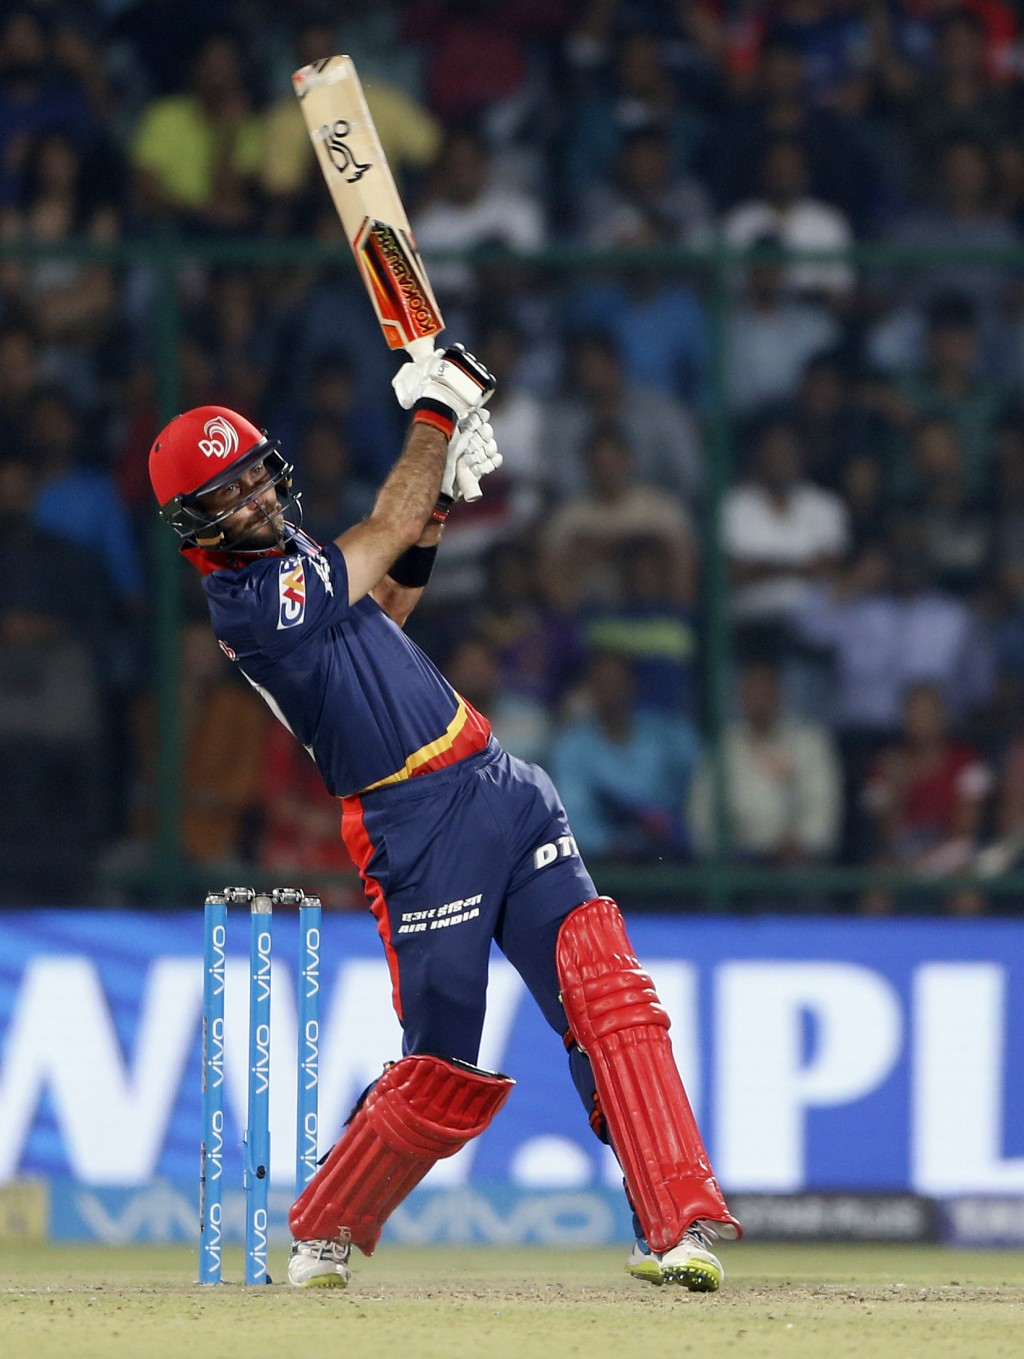 Delhi Daredevils' Glenn Maxwell plays a shot during VIVO IPL cricket T20 match against Kolkata Night Riders in New Delhi, India, Friday, April 27, 201...